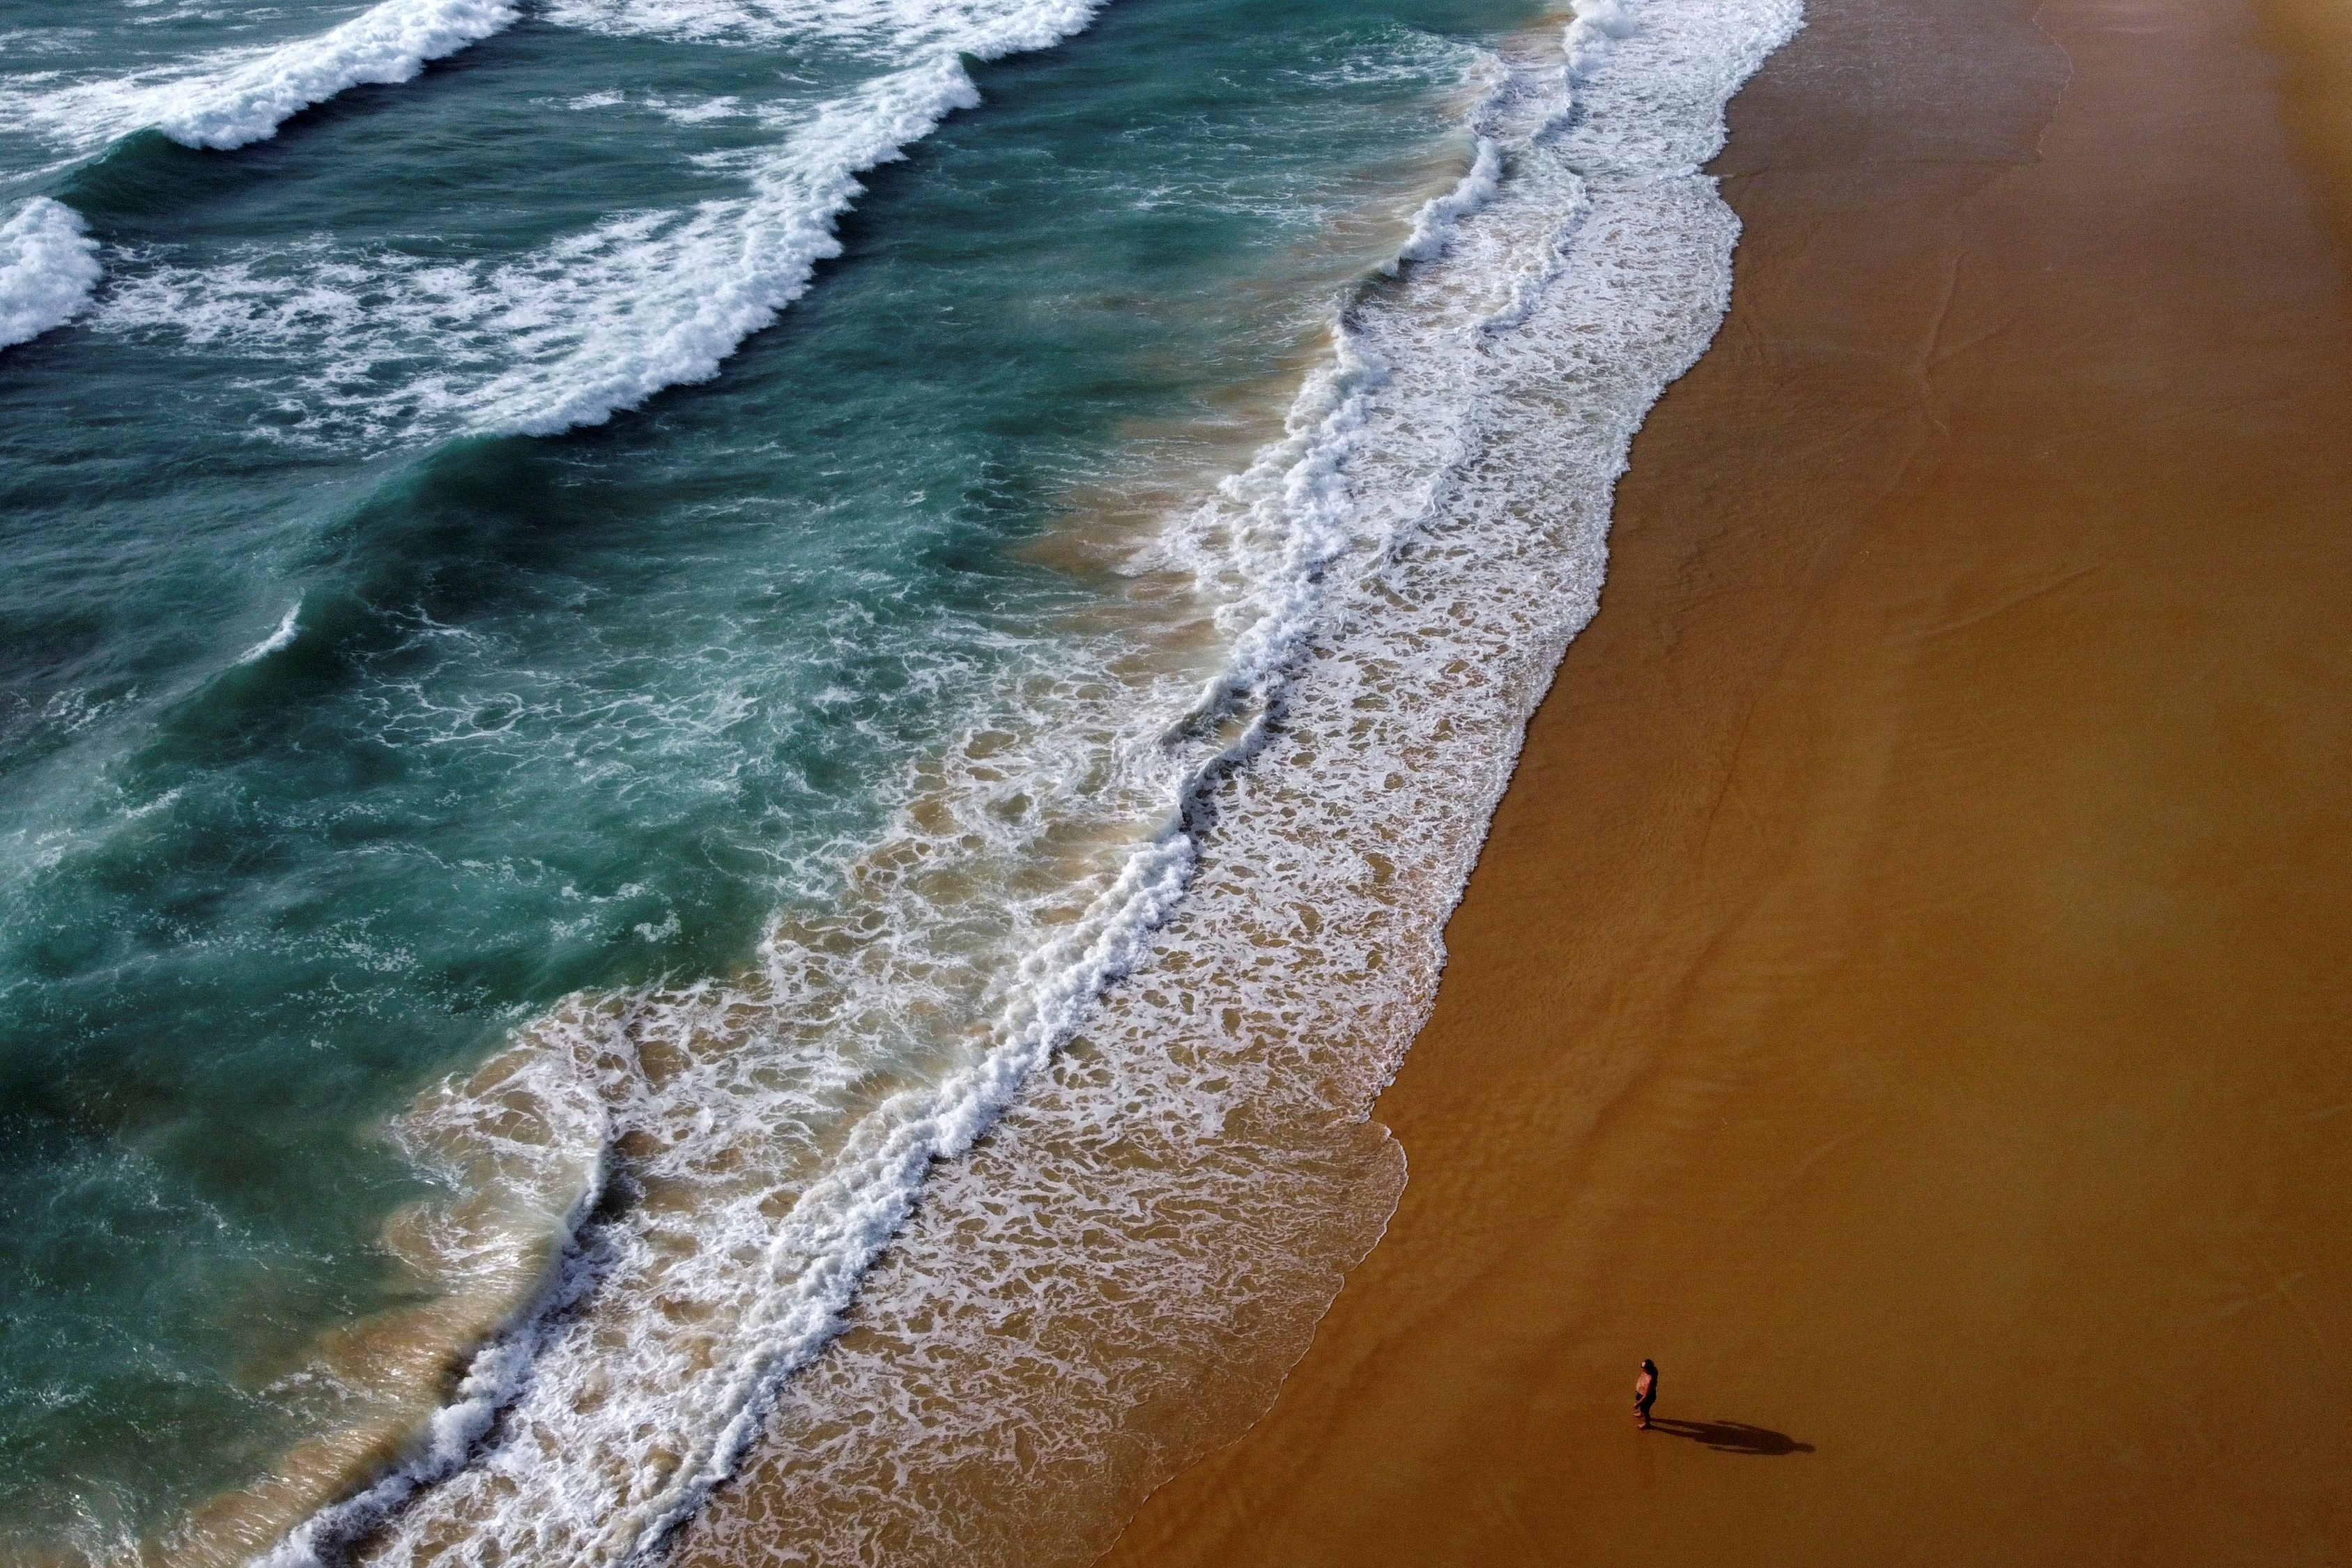 A man walks at the empty Karon beach on Phuket Island, Thailand in April 1, 2021. Picture taken April 1, 2021 with a drone. REUTERS/Jorge Silva/File Photo